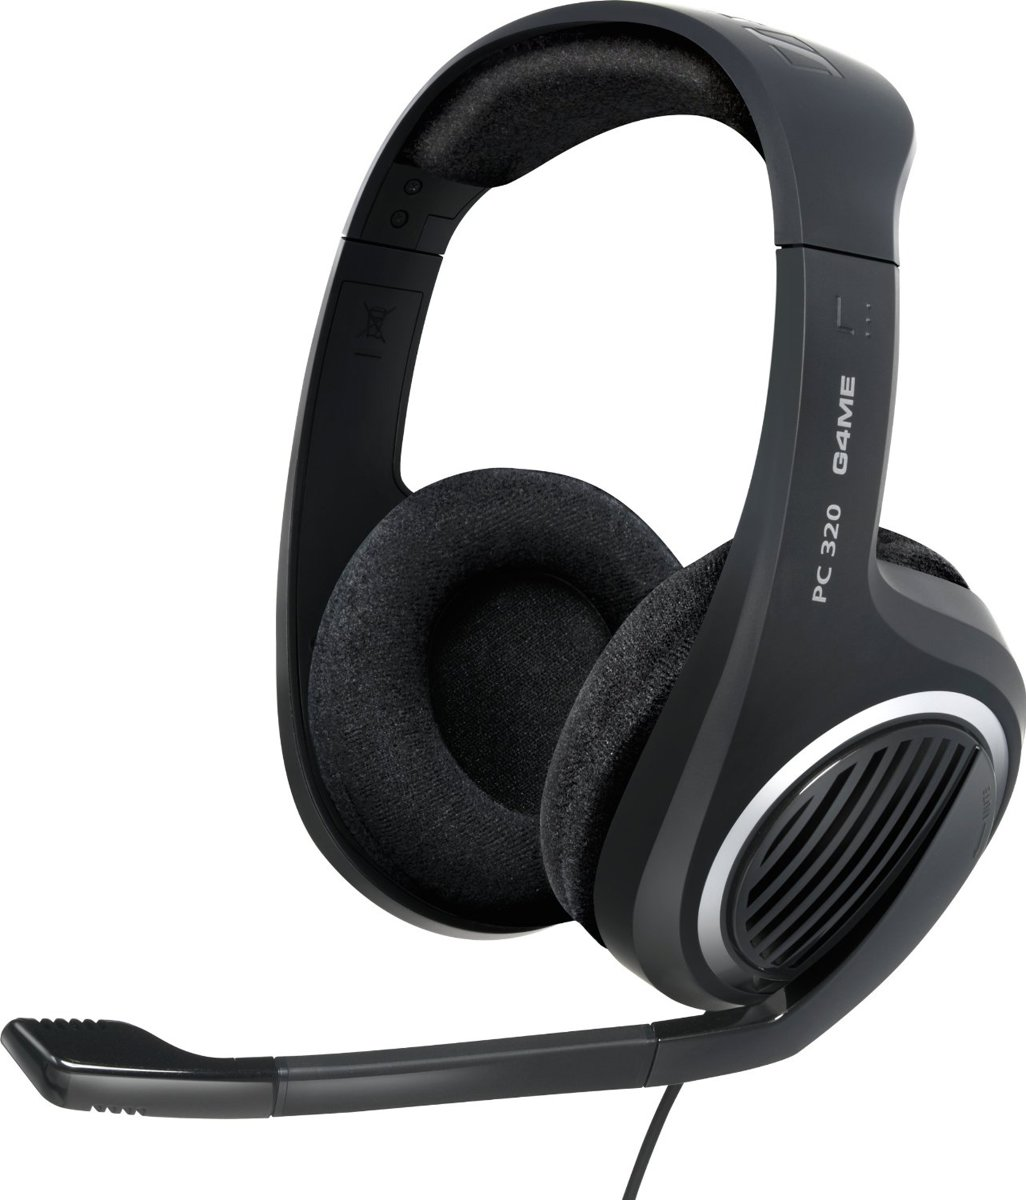 Sennheiser PC 320 - Game headset - Zwart